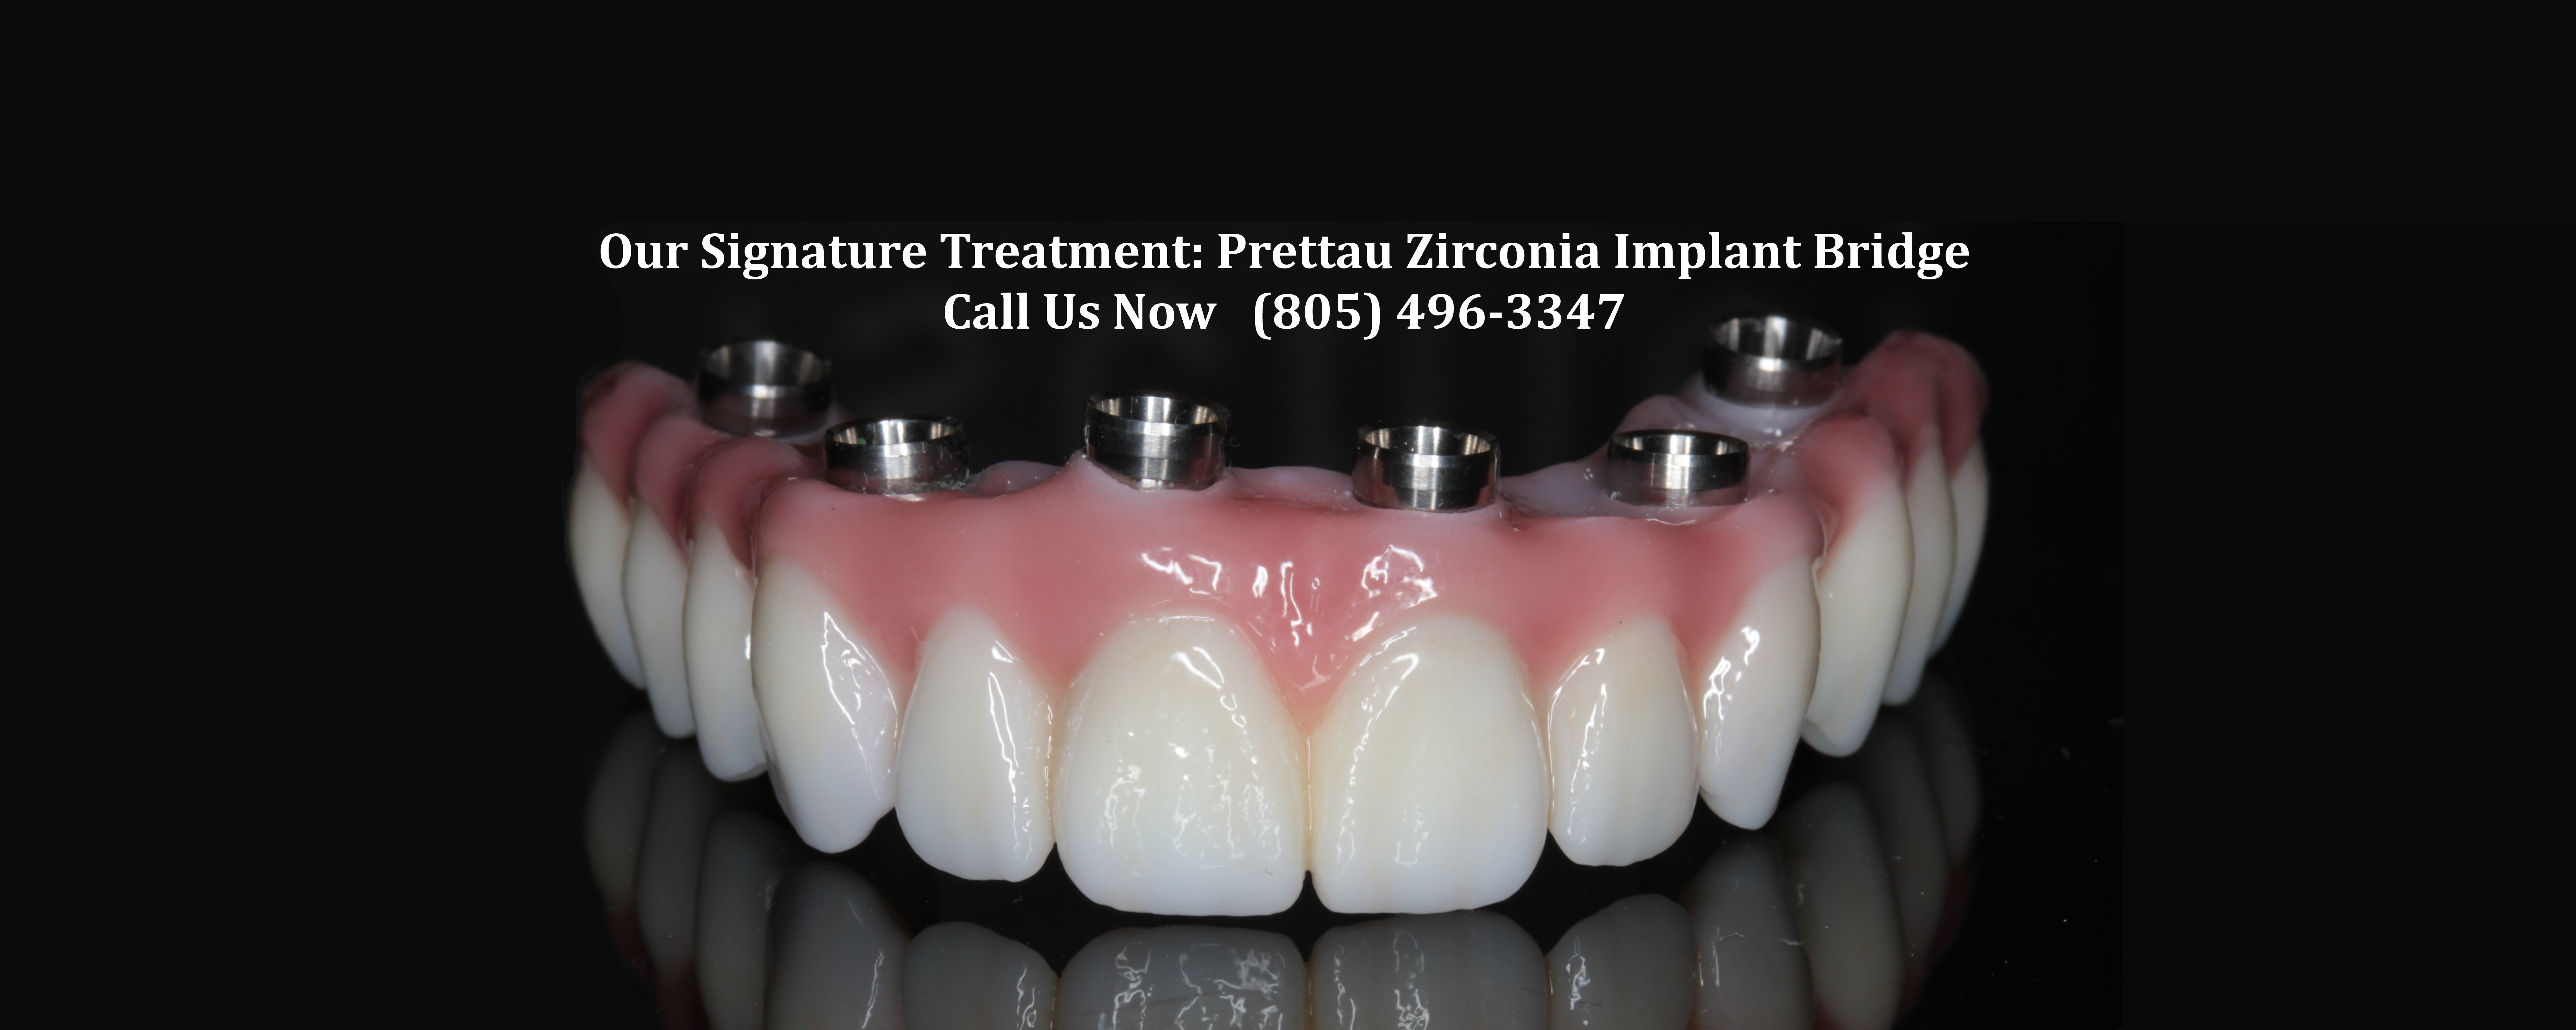 Prettau Zirconia Implant Bridge